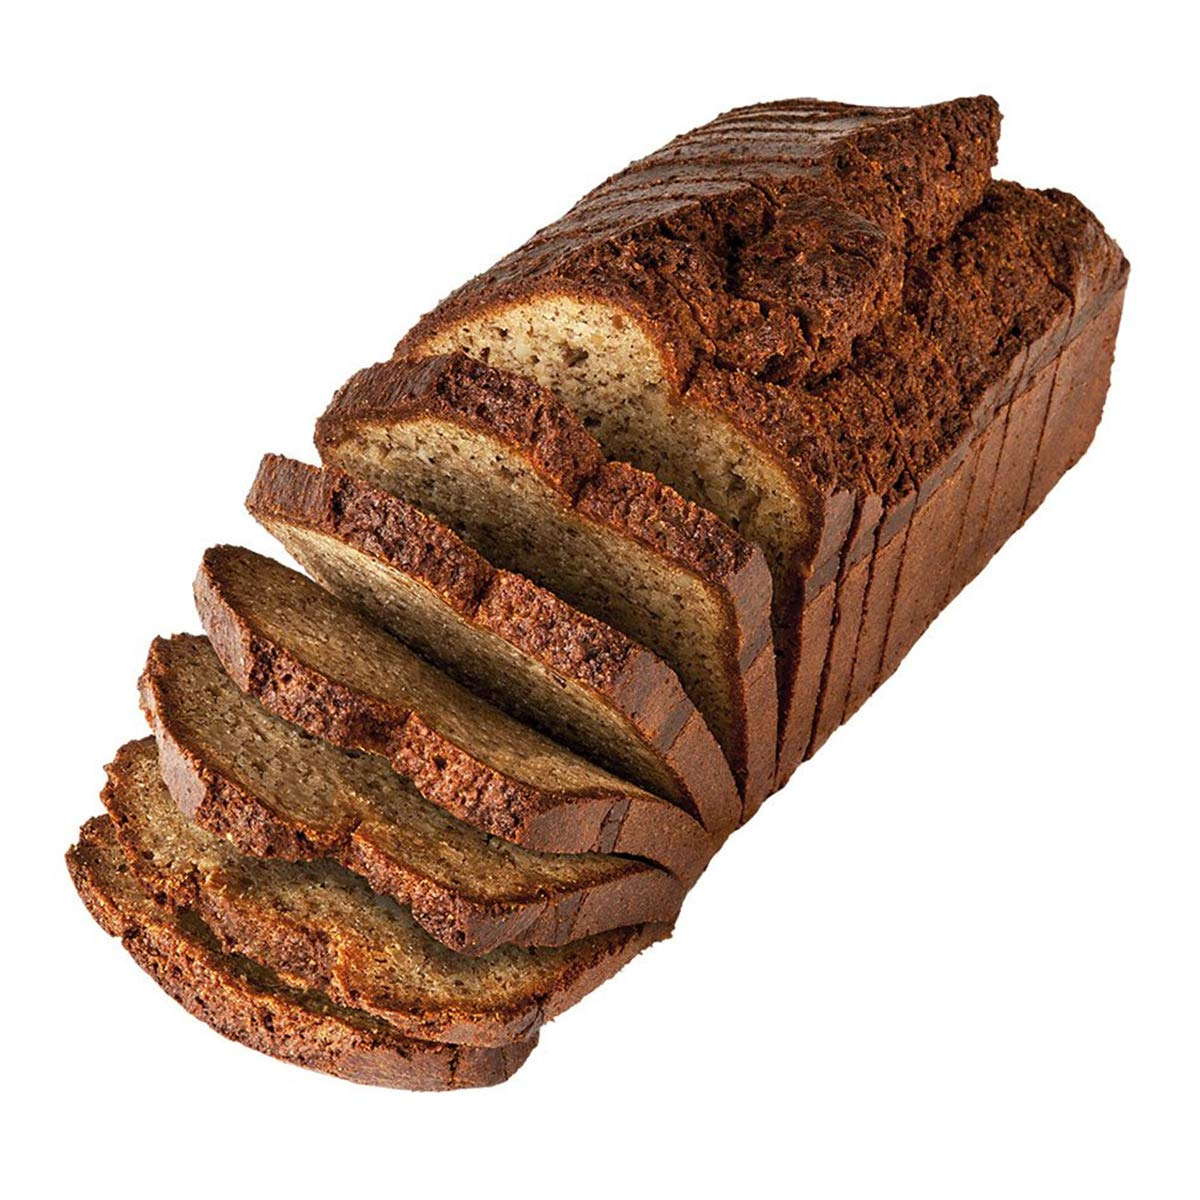 Base Culture Paleo Bread, Large Size | Delicious 100% Paleo, Gluten, Grain, Dairy, and Soy Free- Perfect for Sandwiches (5g Protein Per Loaf, 18 Slices Per Loaf, 1 Count)